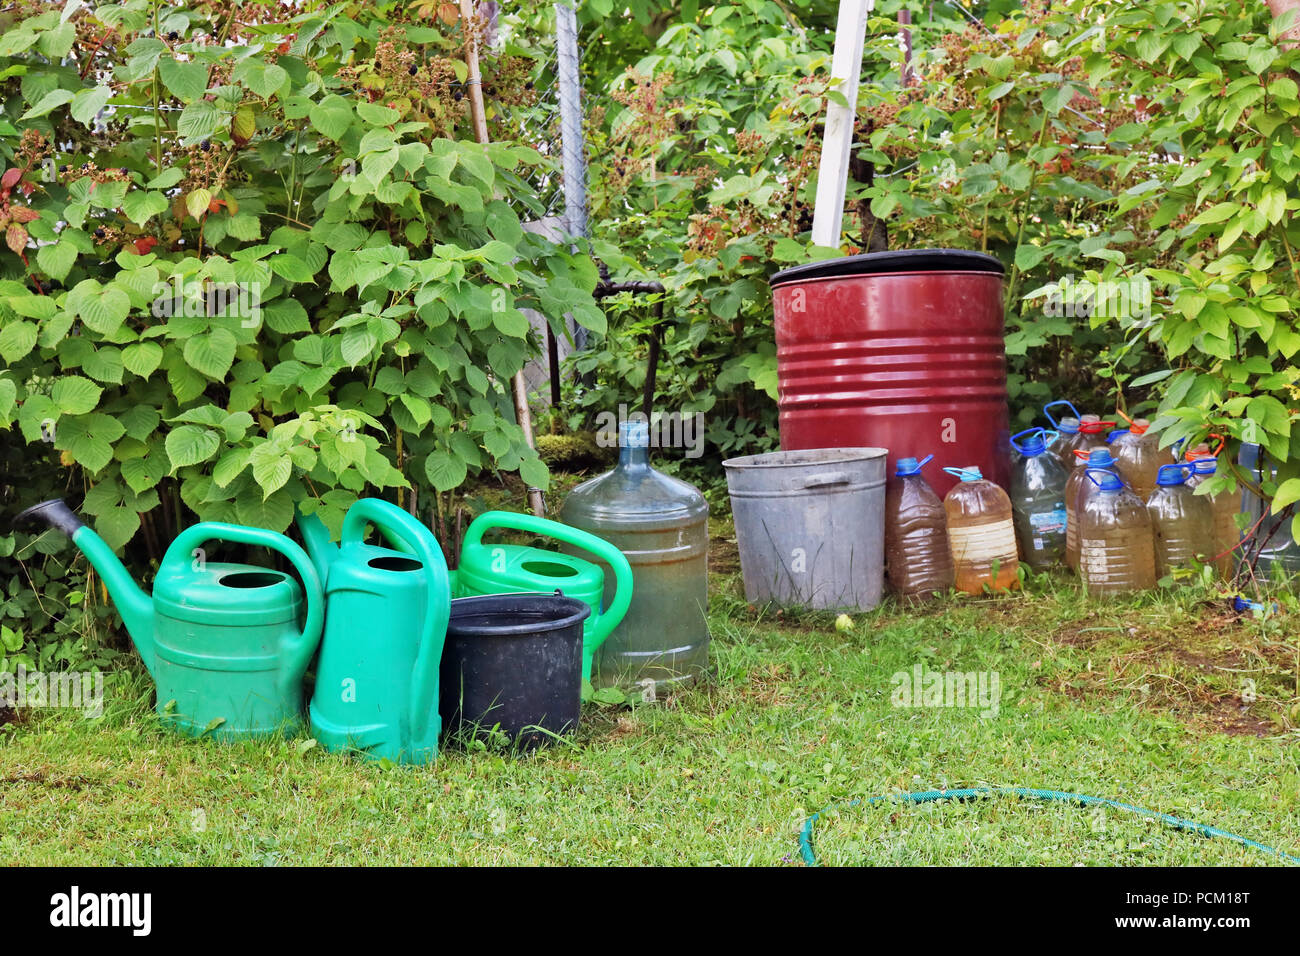 Hot  summer day and the water in buckets and cans in poor european vegetable garden. Thirst concept.  July sunny outdoor concept - Stock Image